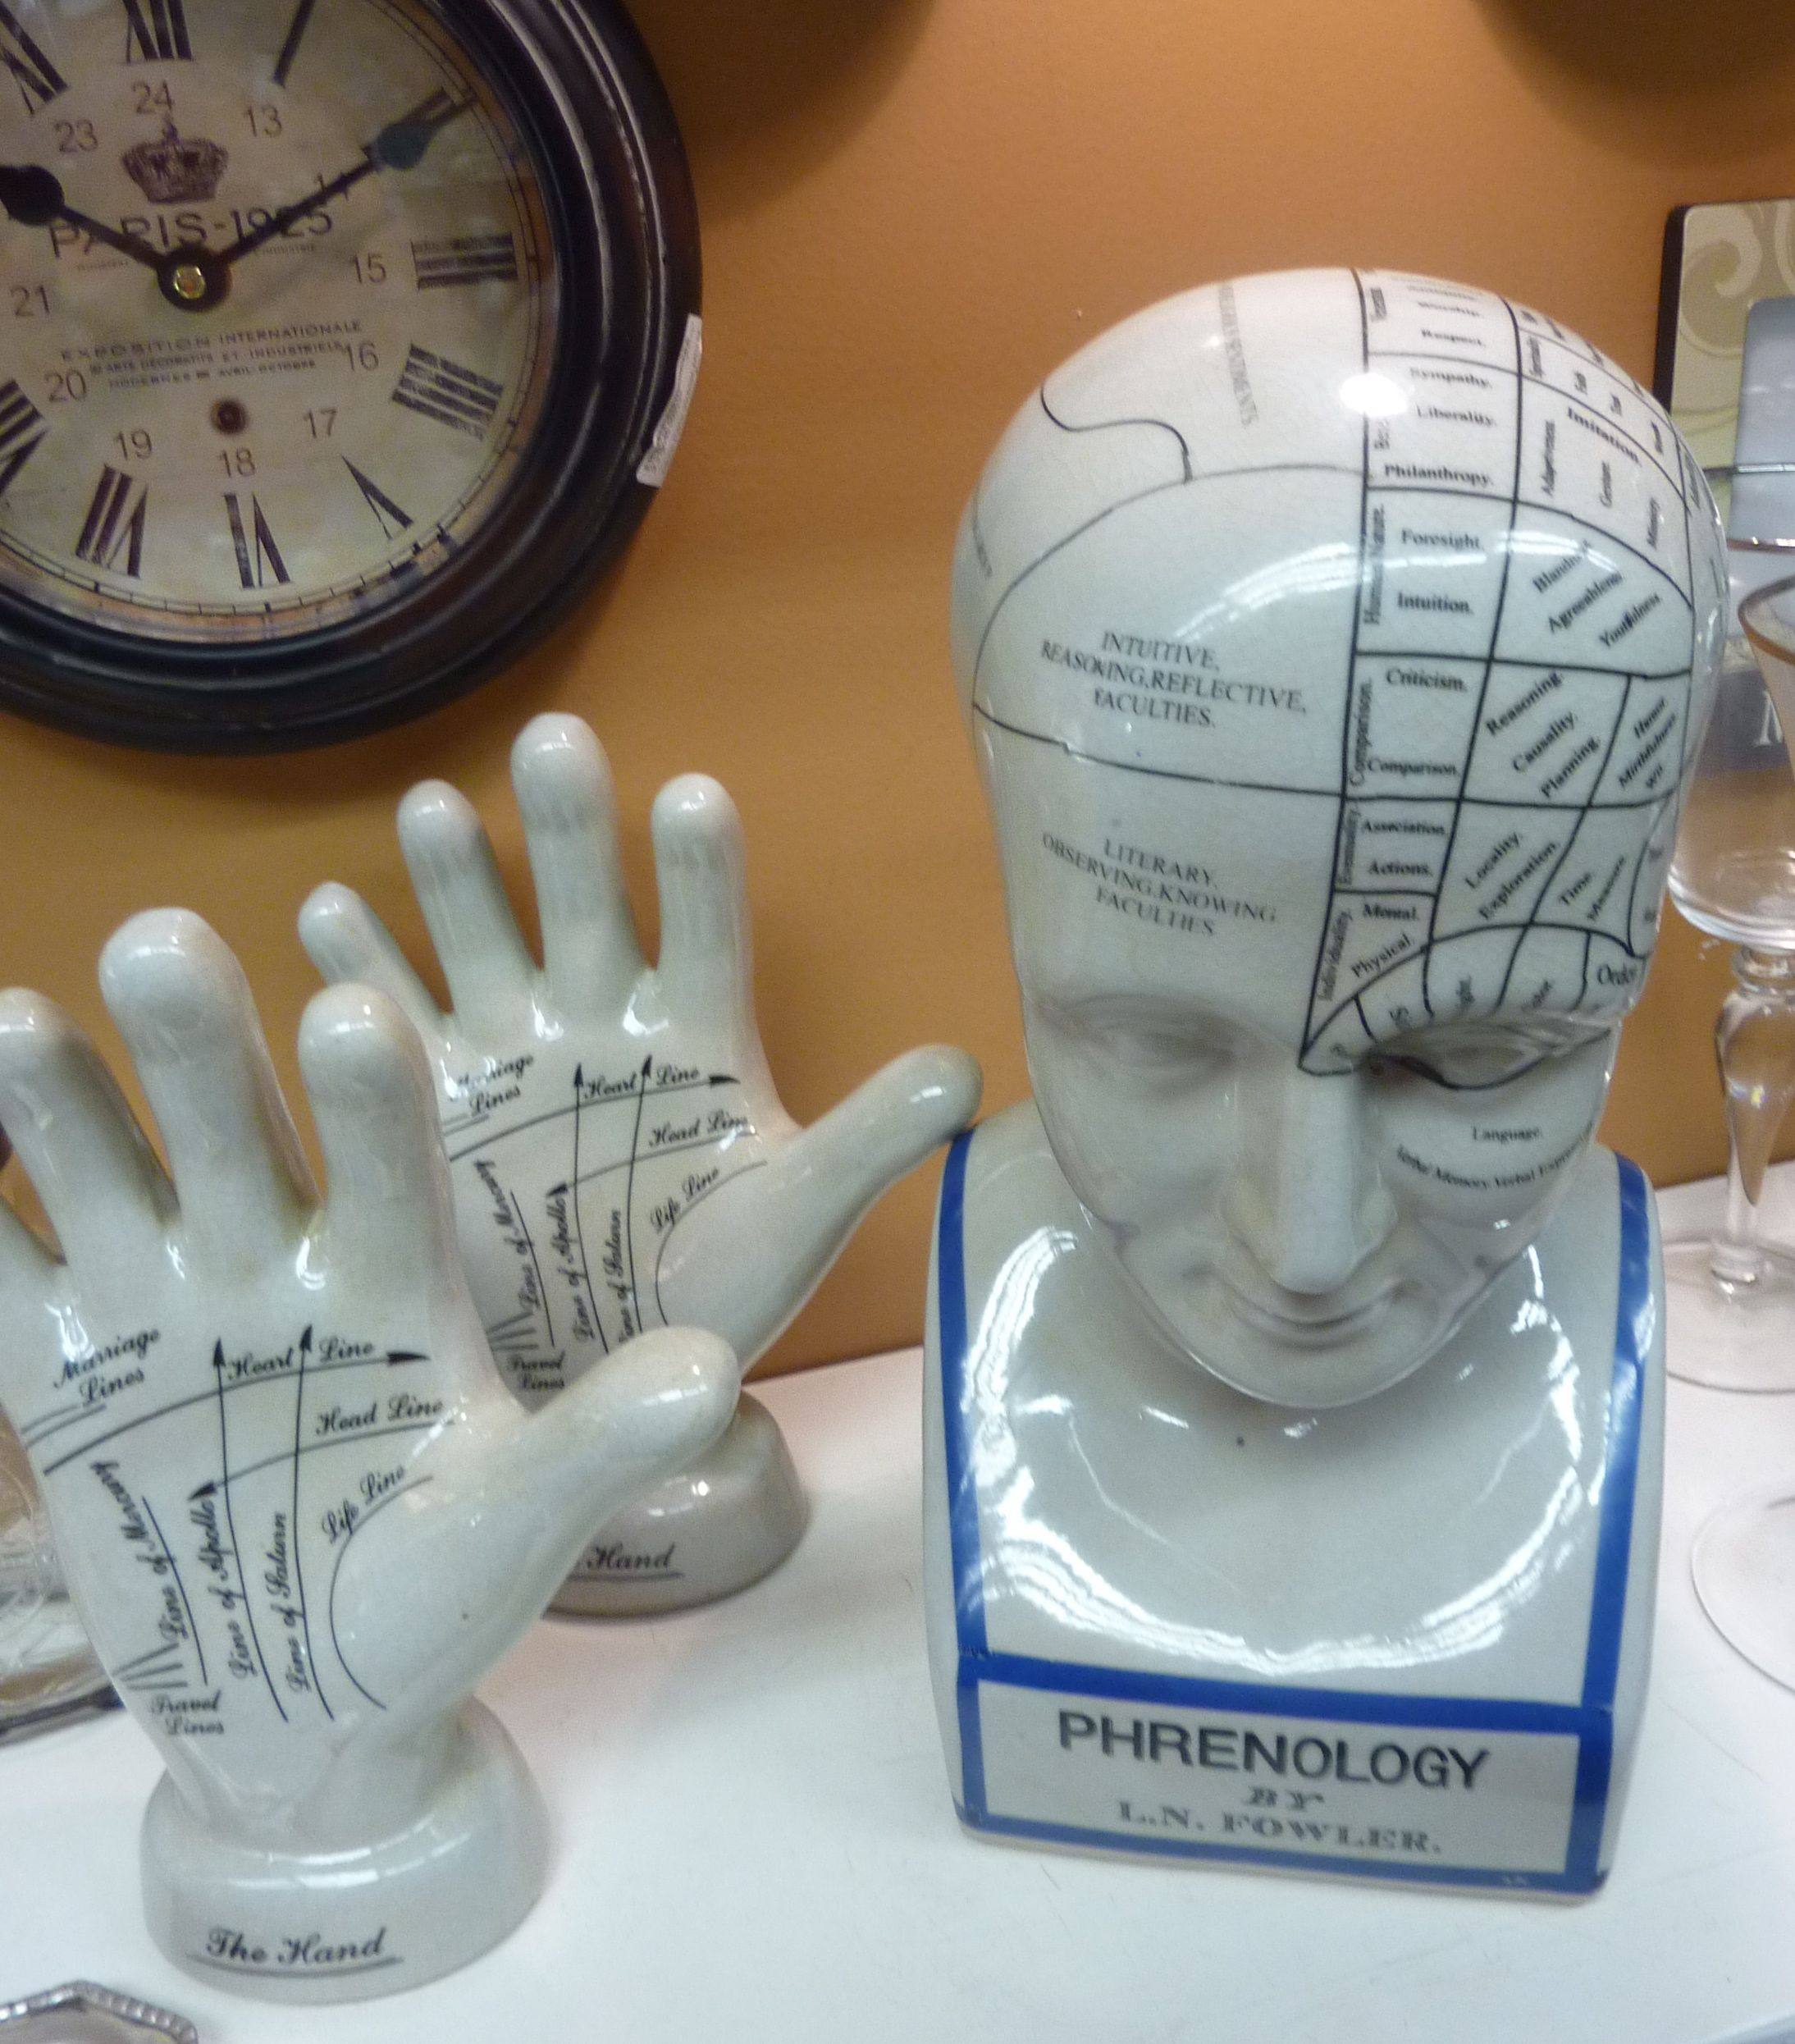 Phrenology head $49.95 and palm-reading hand $28